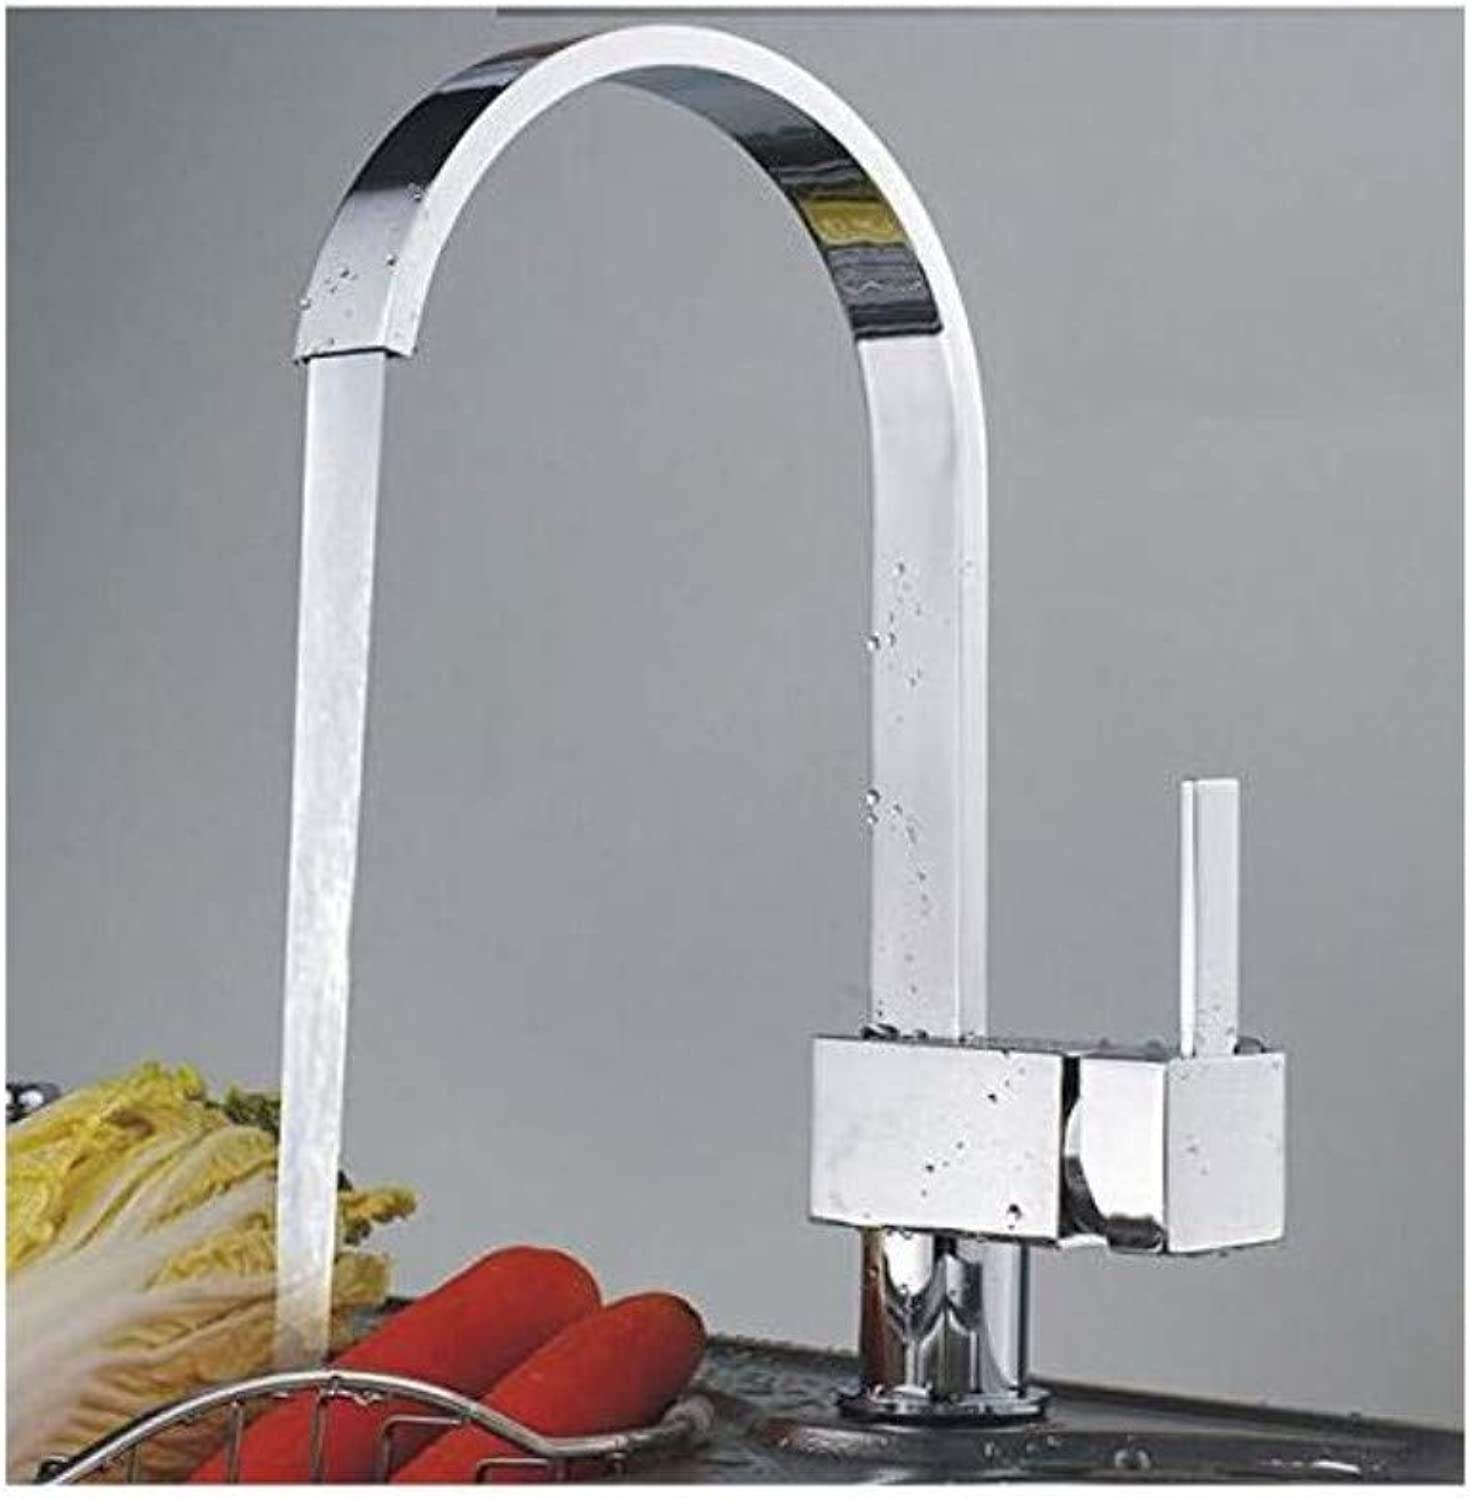 Luxury Vintage Plated Faucet Solid Brass Kitchen Sink Faucet Kitchen Mixer Pull Out Single Hole Faucet Kitchen